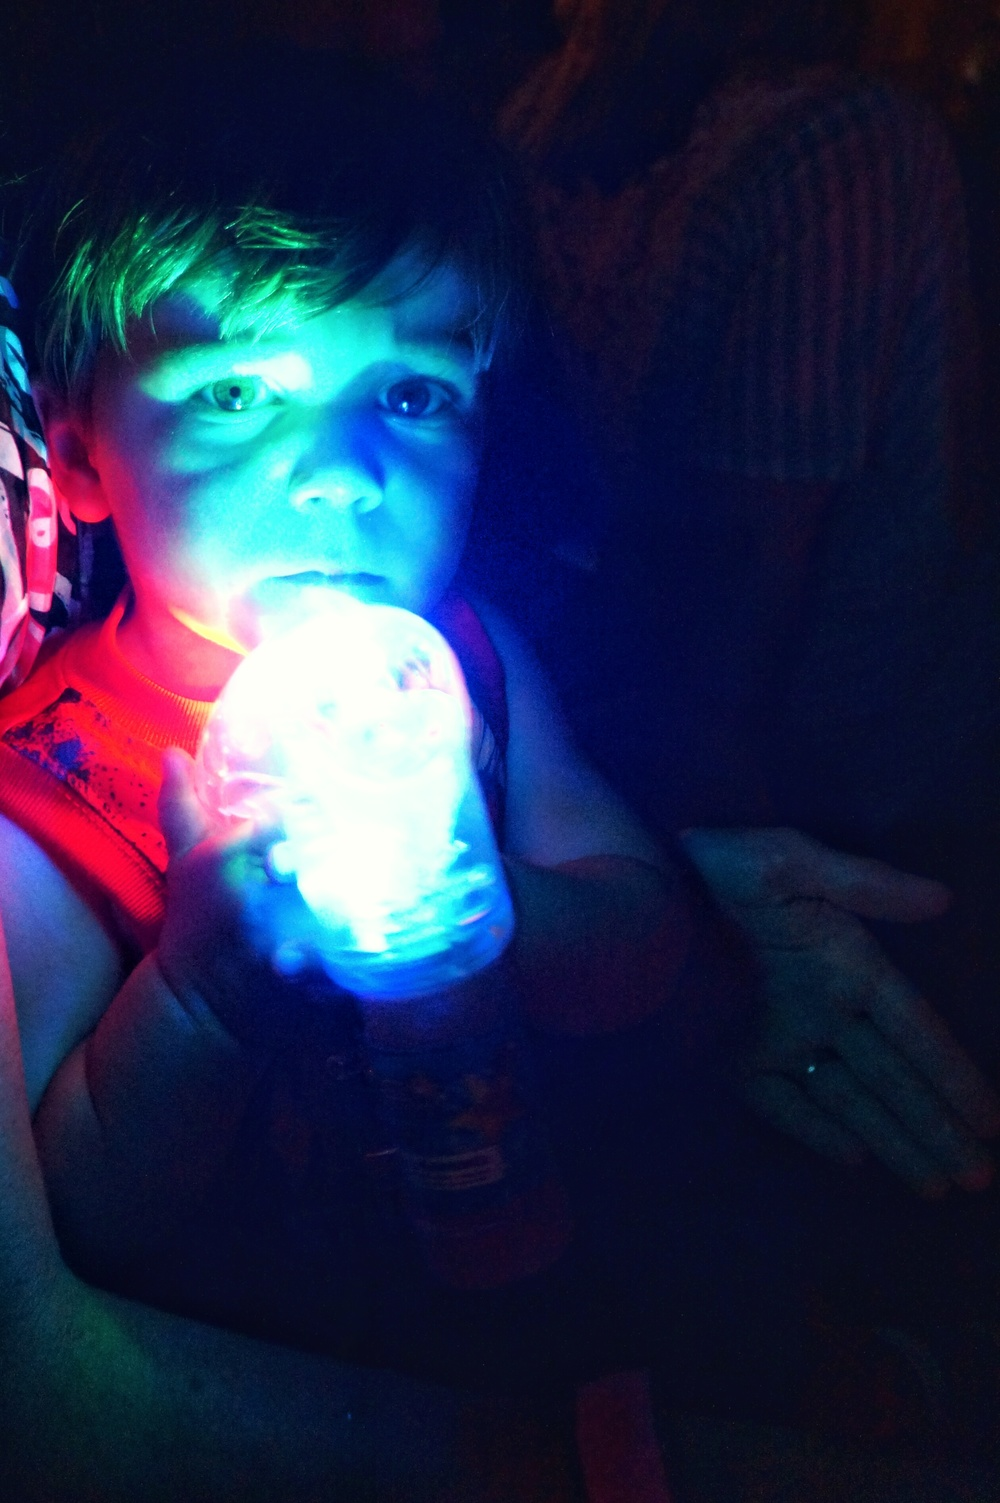 Ryker shooting me with his light up bubble gun